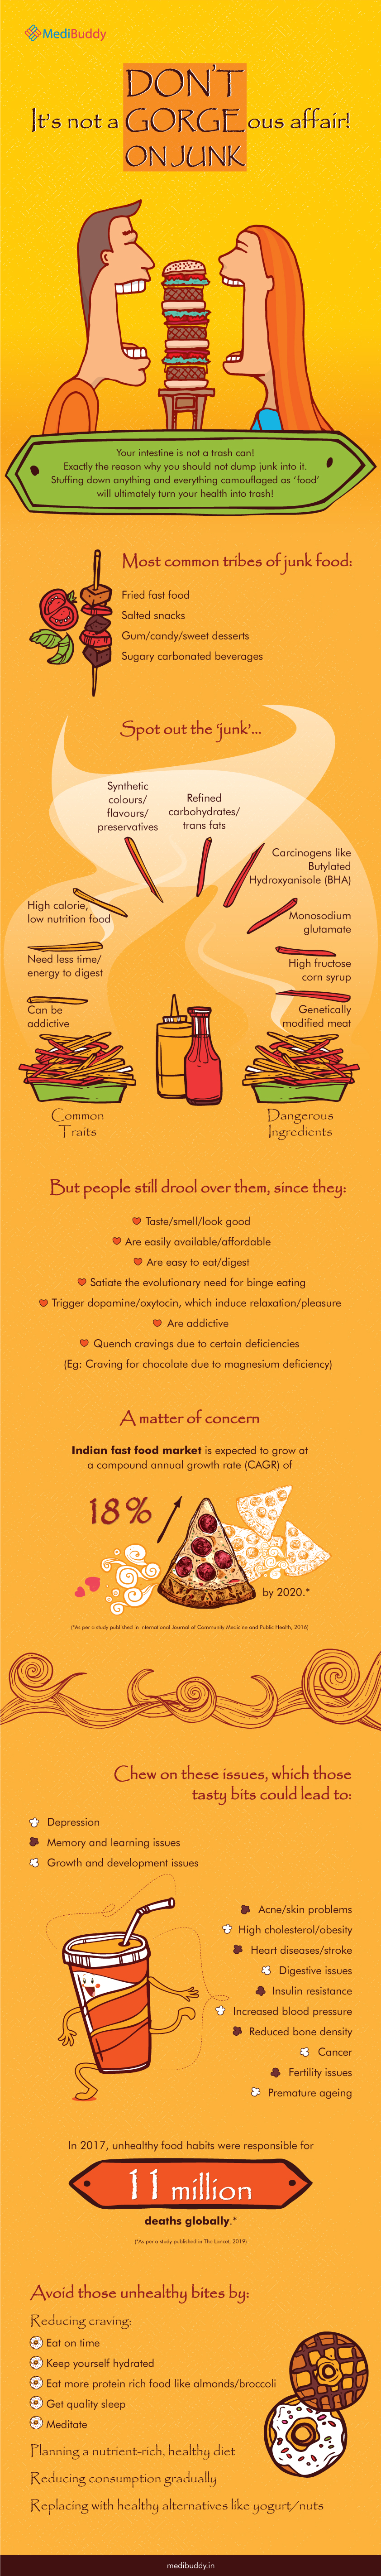 Effects of junk food on health